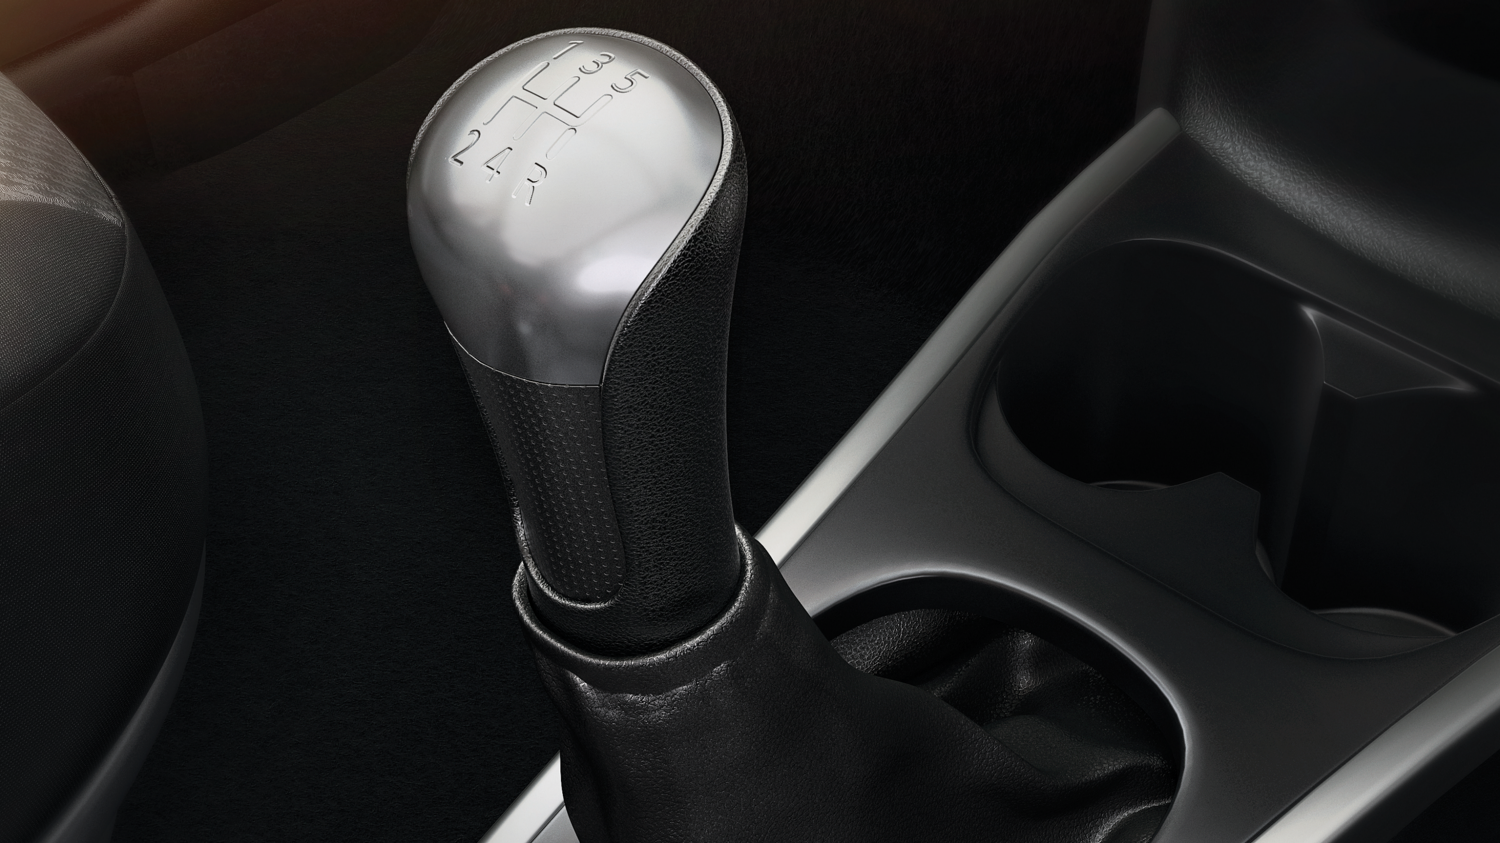 Manual transmission shift knob